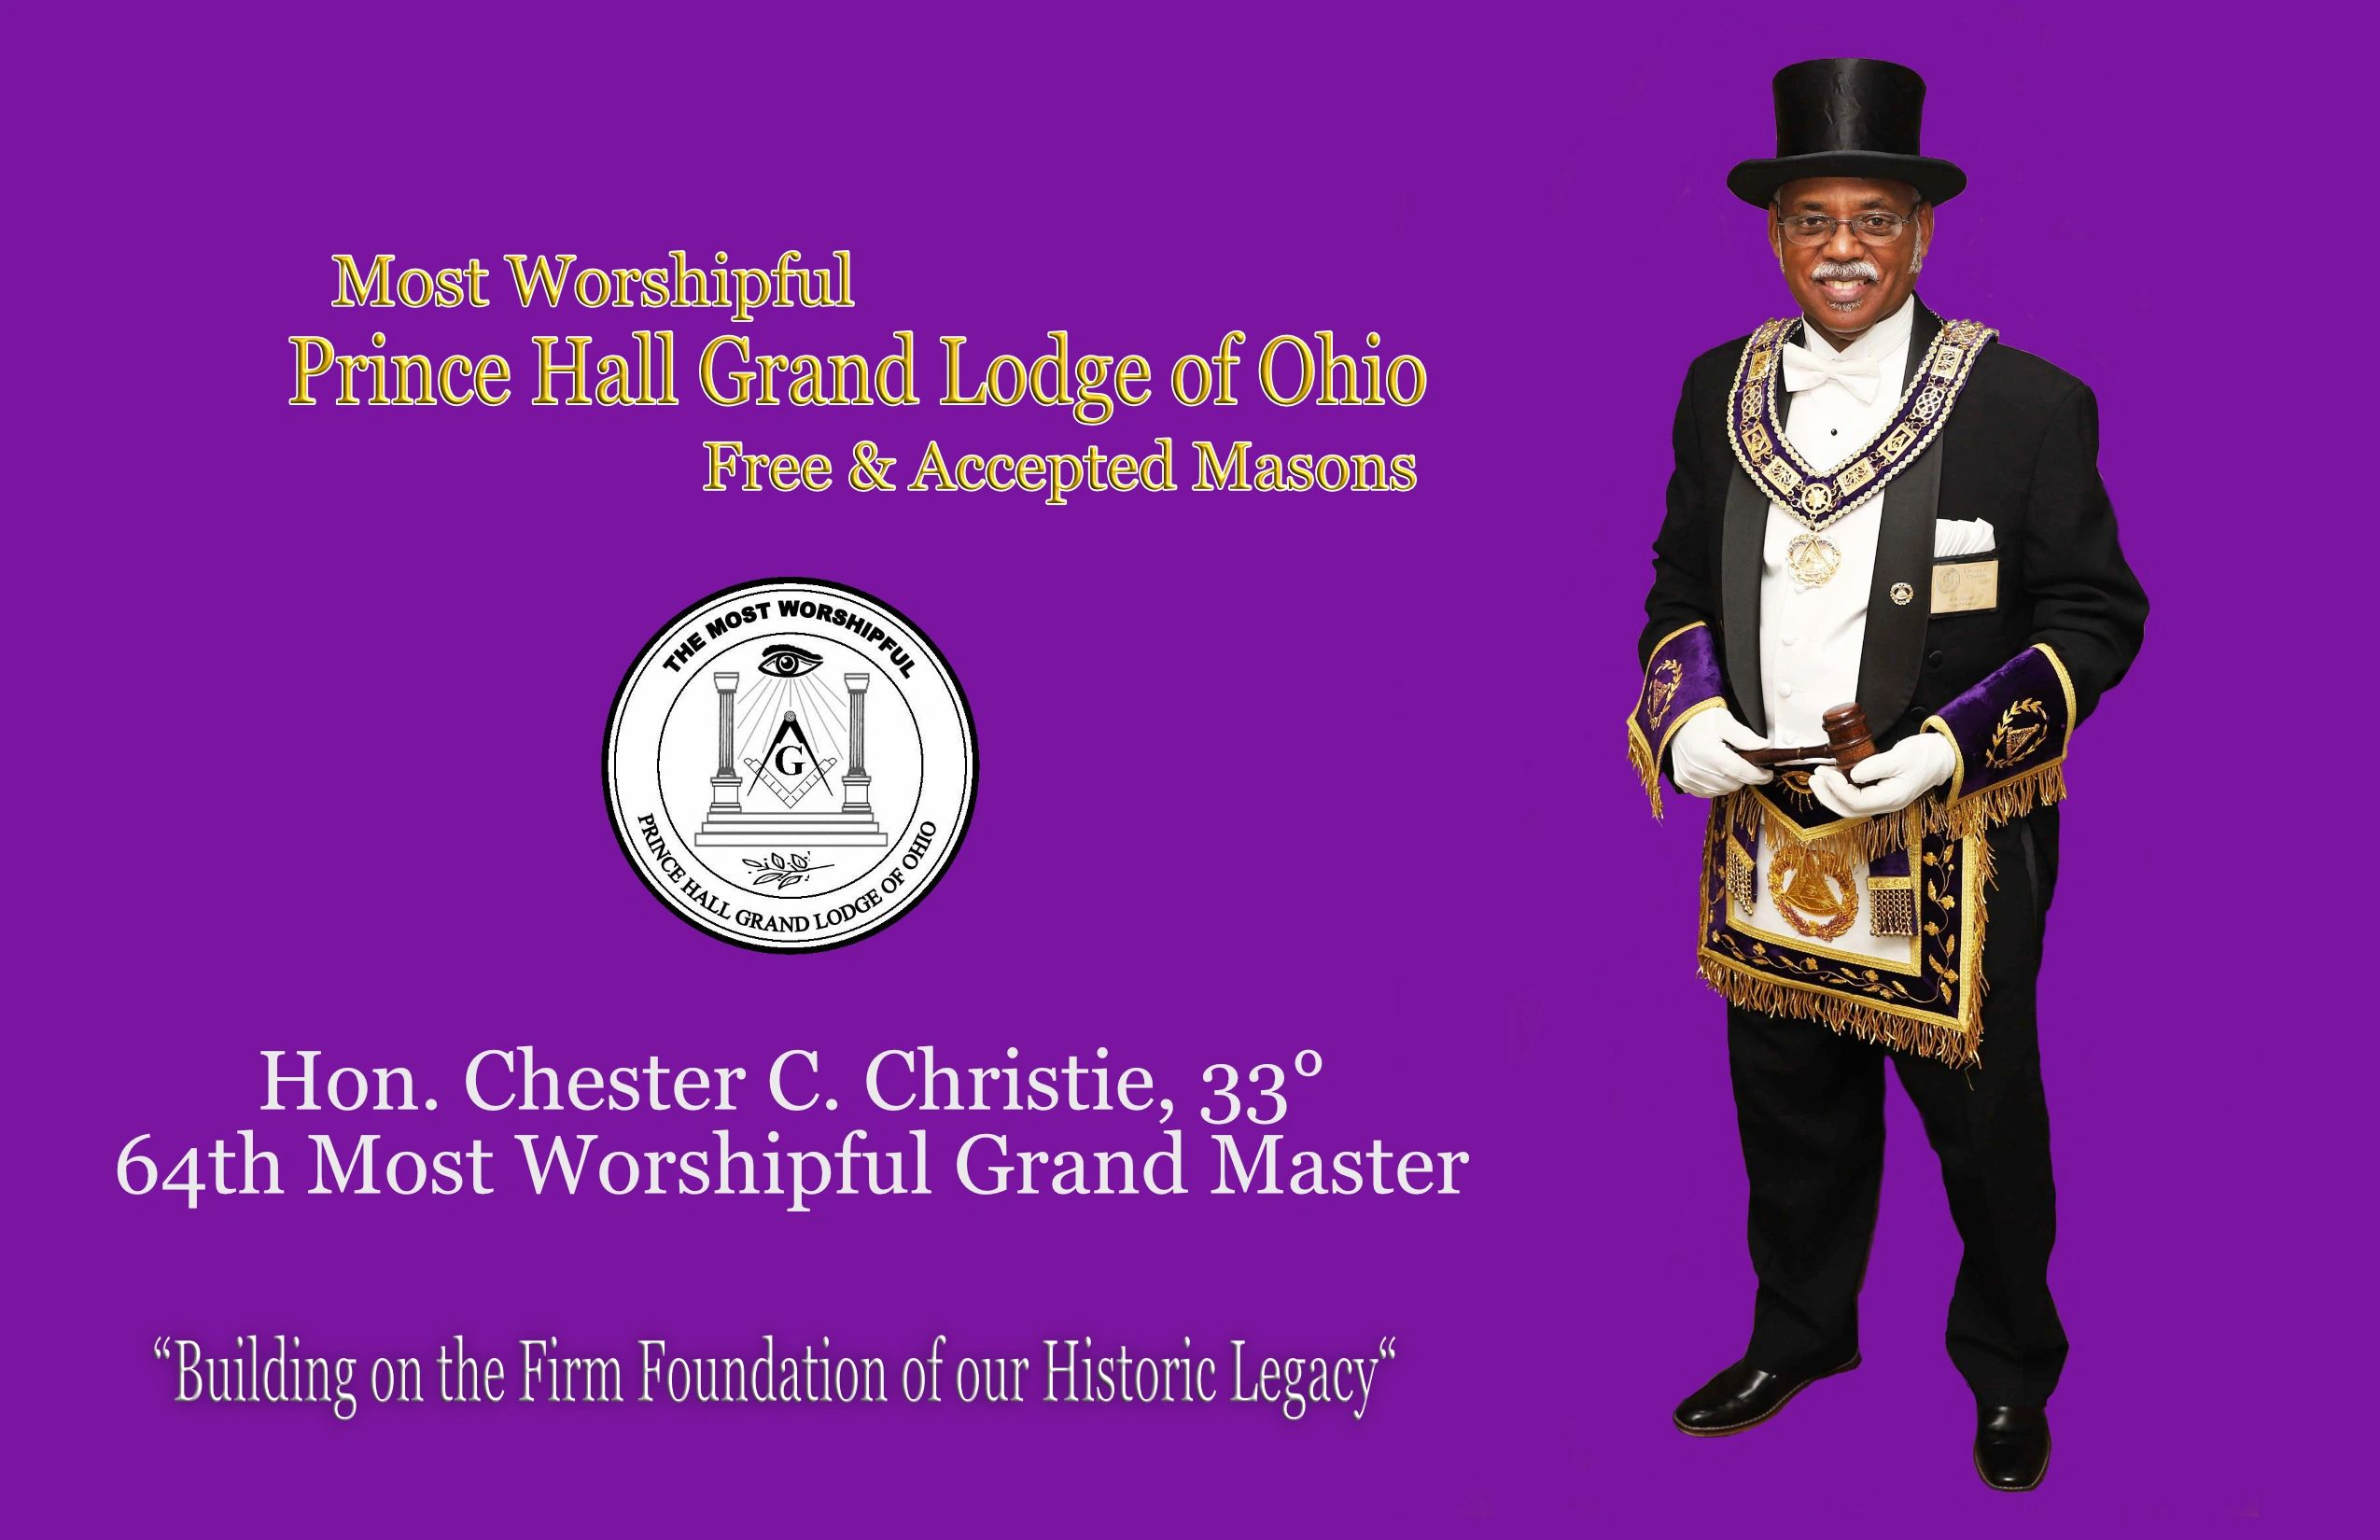 GRAND LODGE PROGRAMS | Most Worshipful Prince Hall Grand